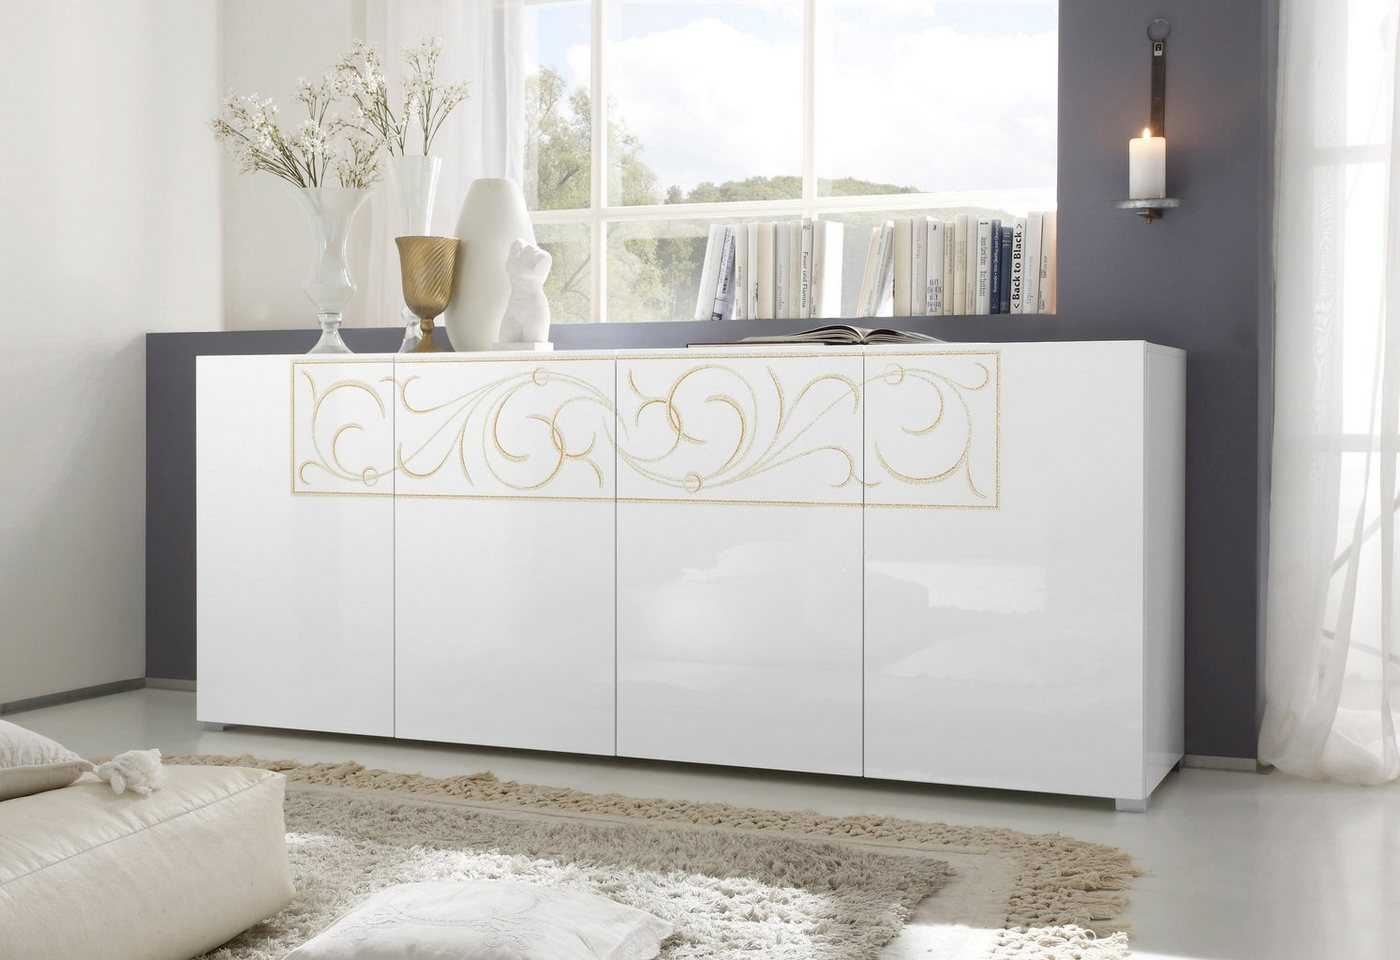 LC Sideboard breedte 210 cm